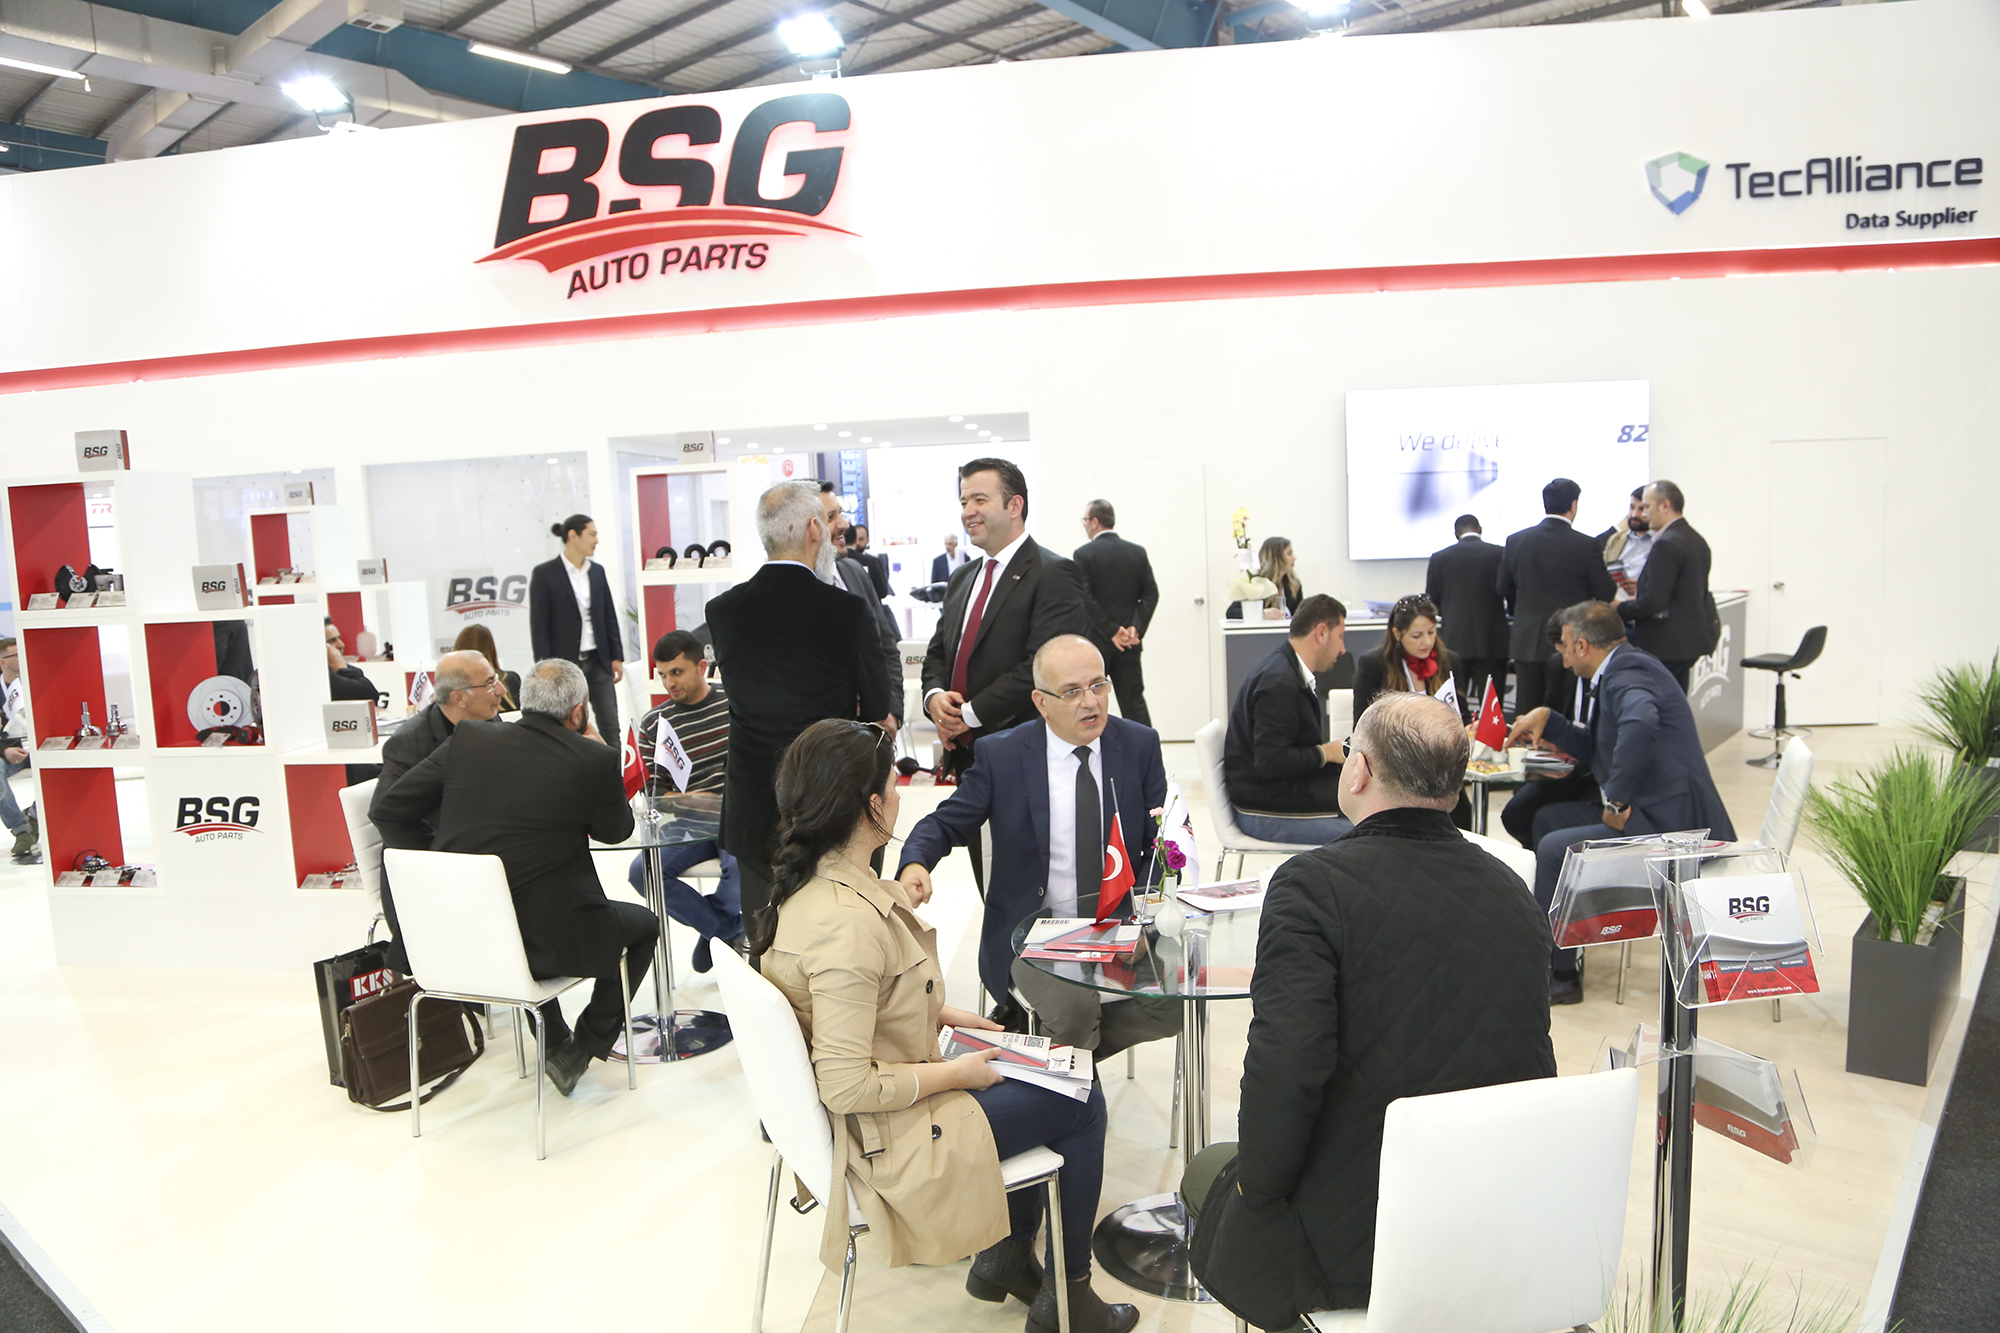 <p>BSG Auto Parts in Automechanika Istanbul 2018 was finished with very high participation. Was one of the focal point forfor both, it's stand design and participants also activities carried out. BSG Auto Parts brand hosted guests from Turkey even from many countries of the world with the participants showed great appreciation and interest.</p>  <p>With over 13.000 product references, the brand brings together quality and reliable products from 5 countries in the world with its existing and potential business partners; efficient and effective interviews was made.</p>